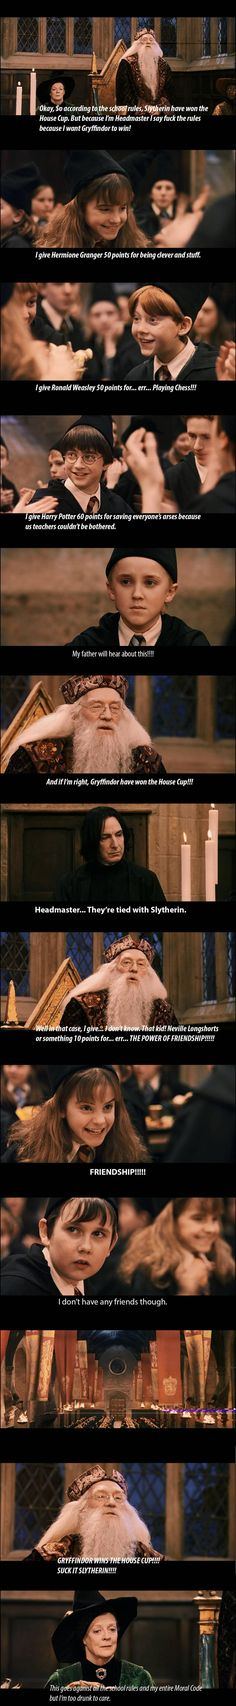 Dumbledore: Screwing Slytherin since 1997 - Imgur